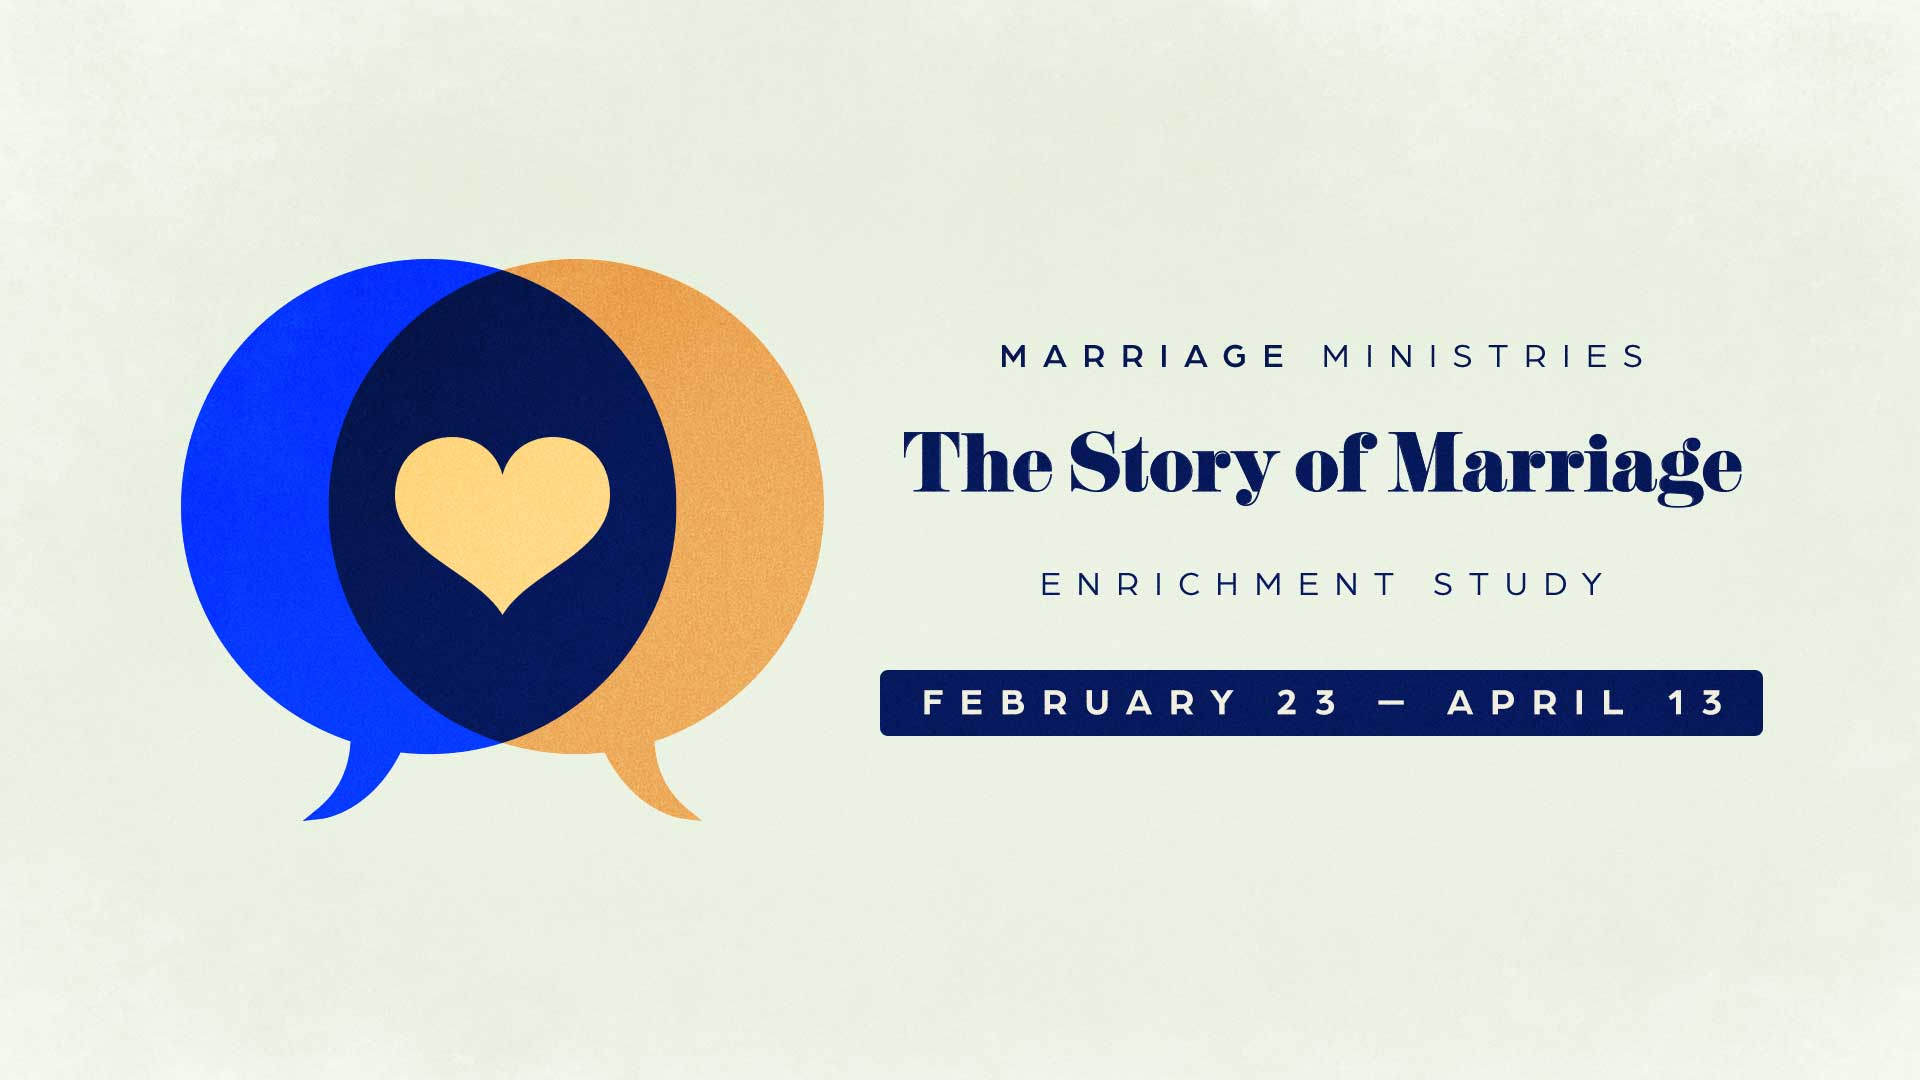 'The Story of Marriage' study